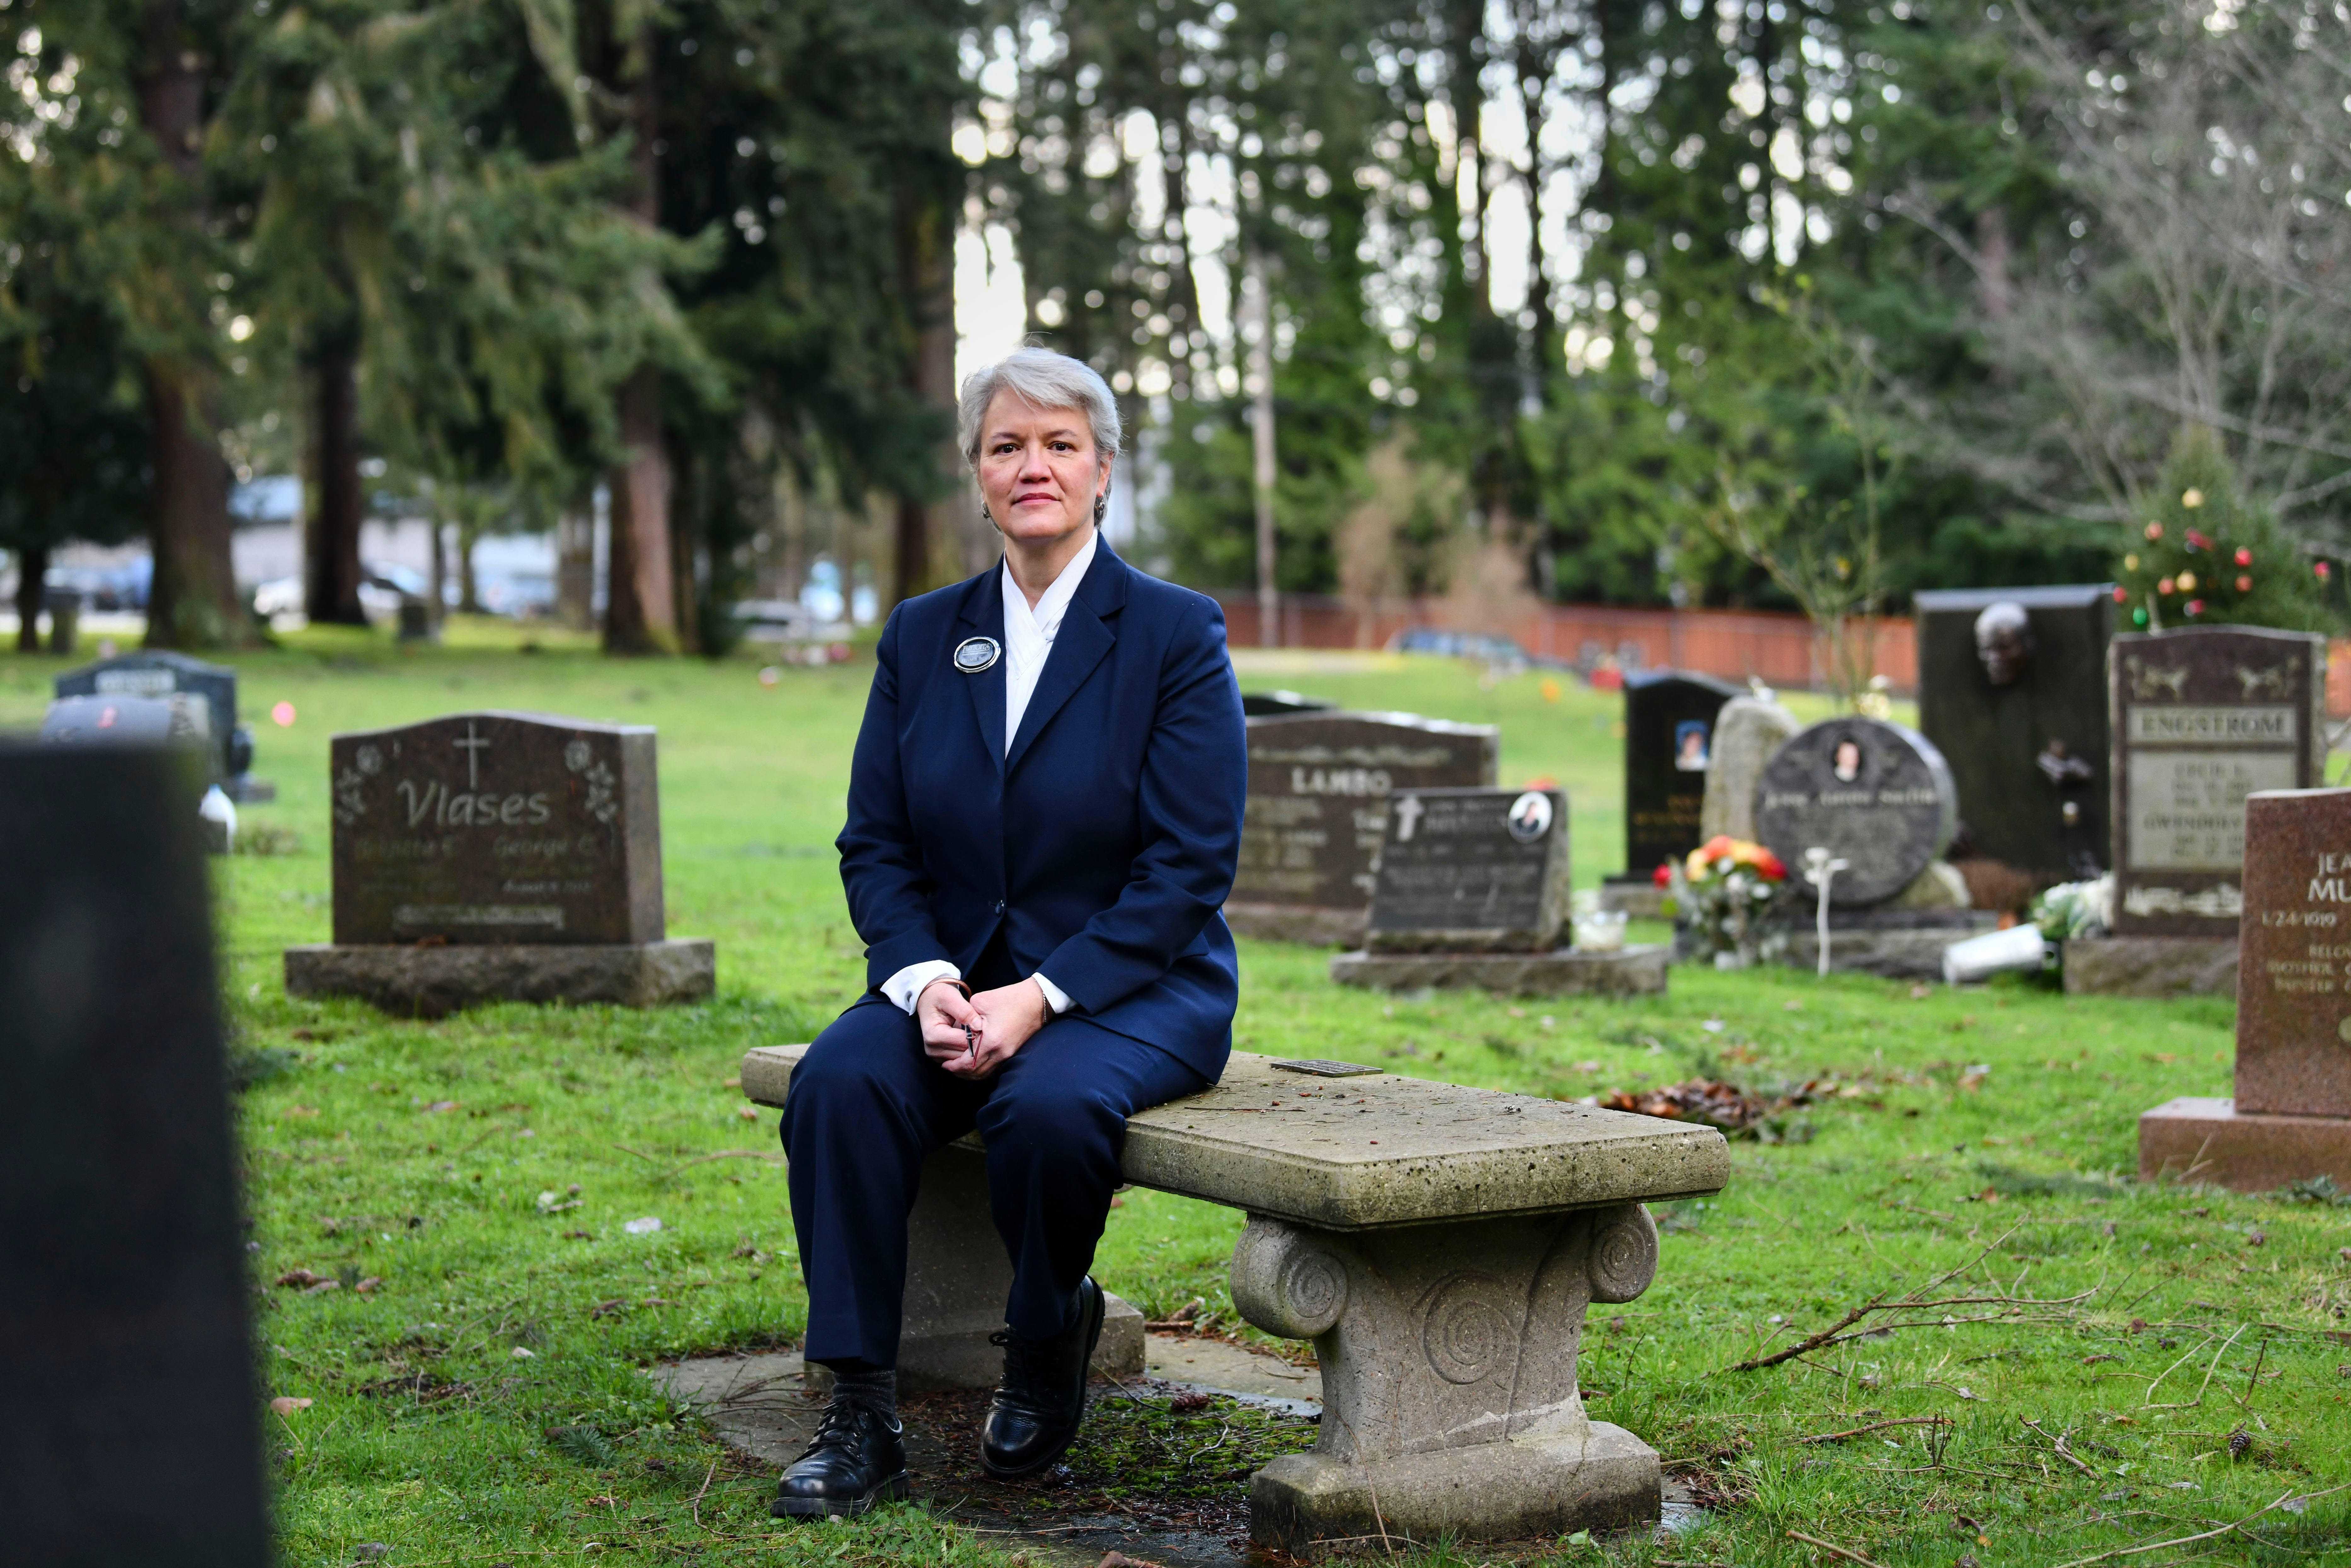 """Elizabeth Baty, 58, a funeral director at a family-run funeral home in King County, Wash., recalls gathering with a dozen staff members in the company chapel in late February 2020 to discuss the coronavirus pandemic. """"We had a what-if situation,"""" Baty said. What if the virus came to King County? What if we ran out of PPE? Days later, residents at the nearby LifeCare Center of Kirkland nursing home would begin to die of COVID-19."""